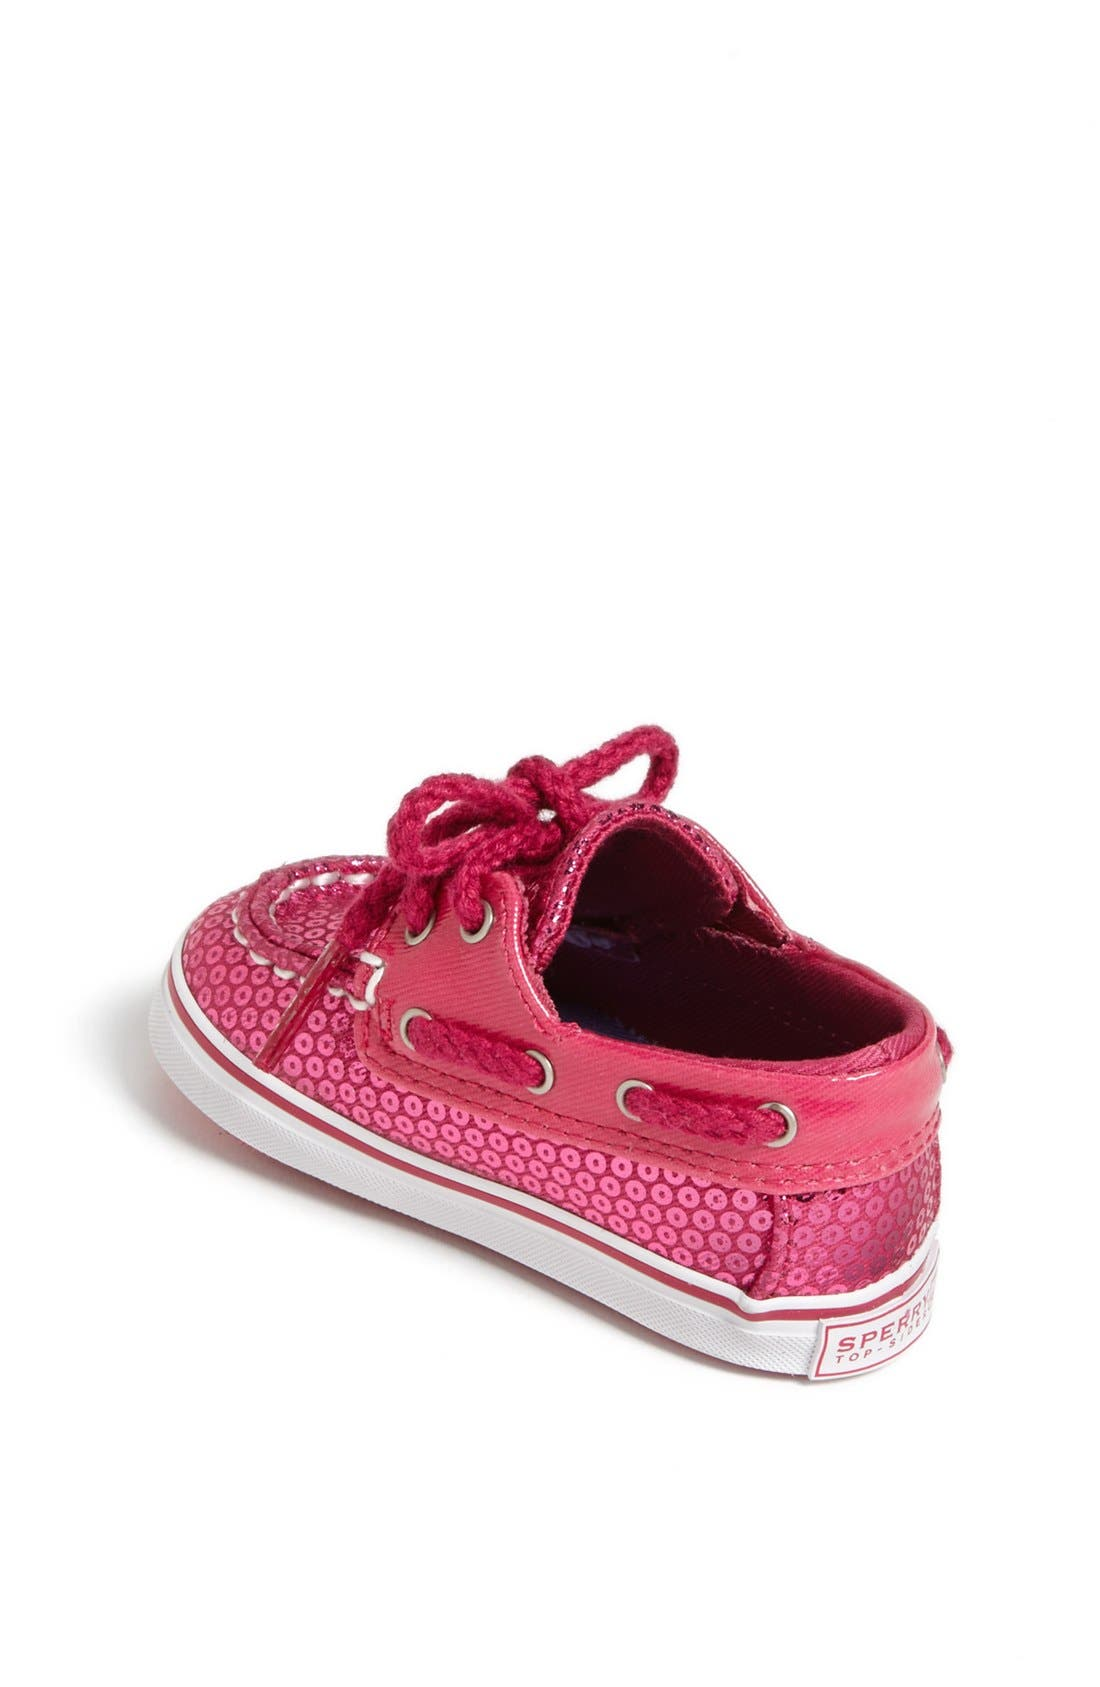 Alternate Image 2  - Sperry Top-Sider® Kids 'Bahama' Crib Shoe (Baby)